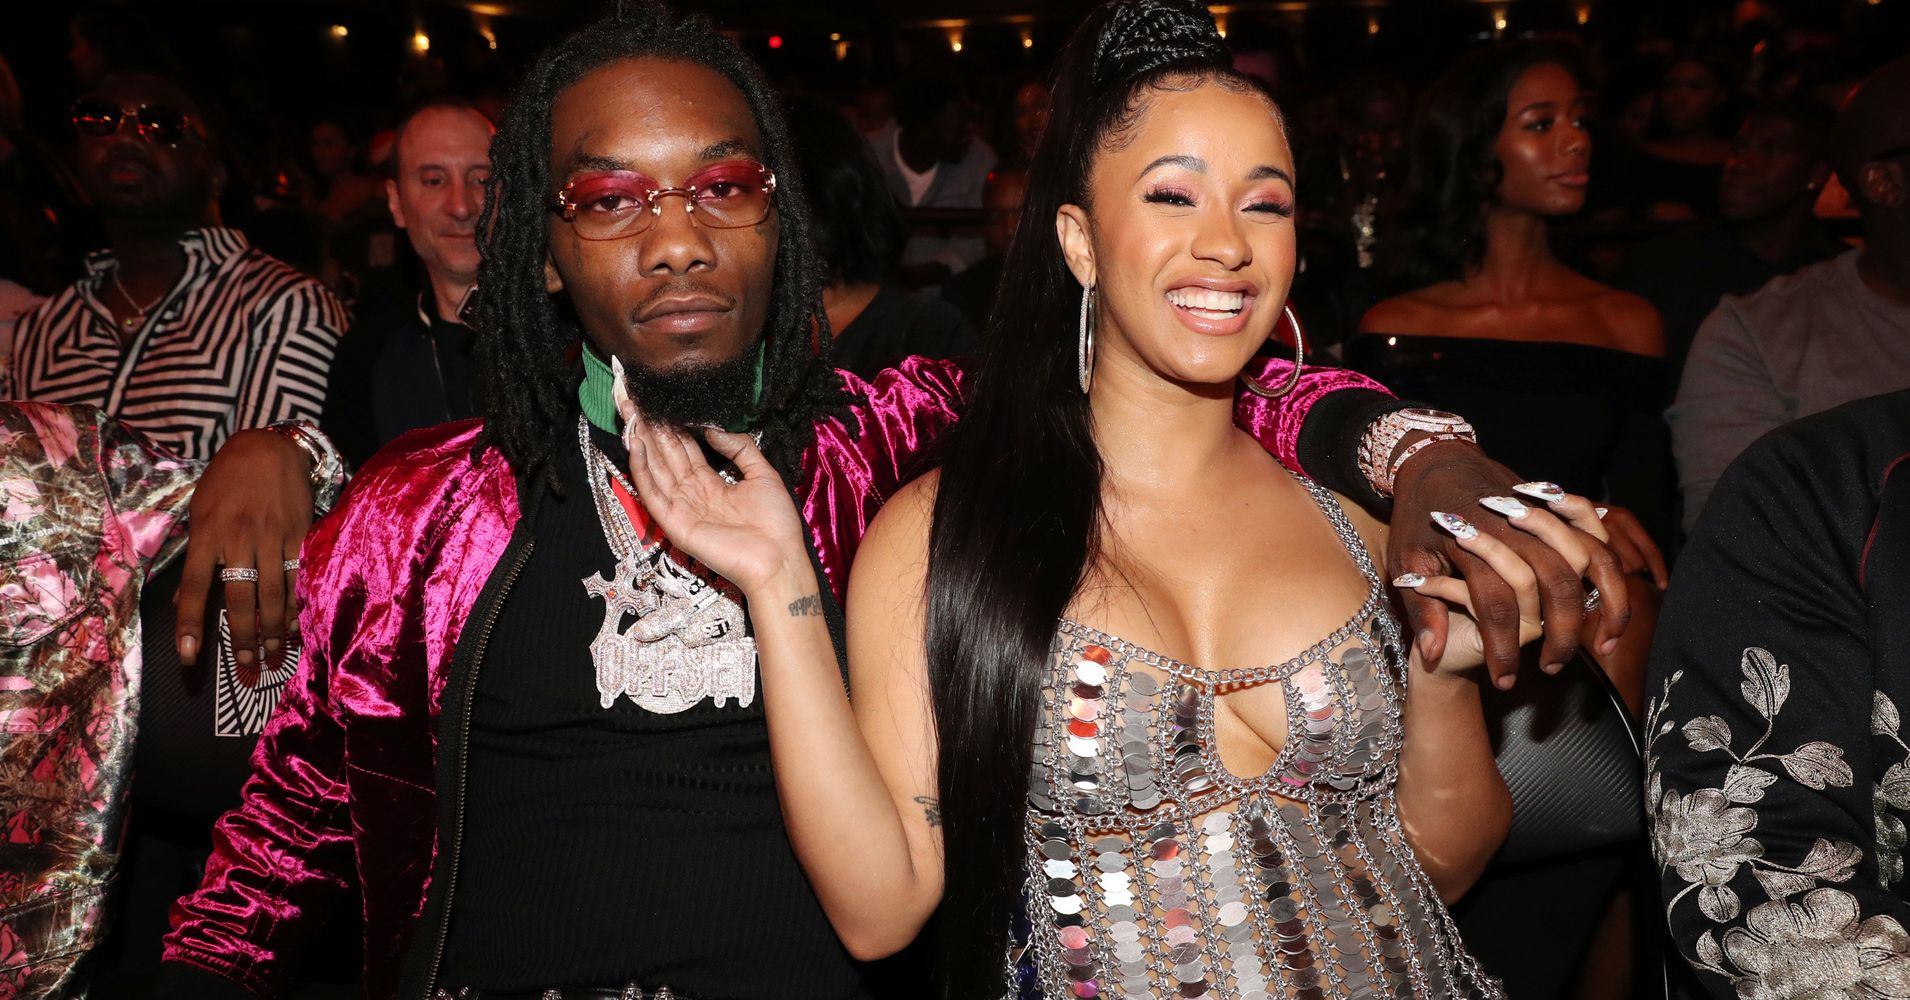 Cardi B Fiance: Cardi B Defends Fiance's Offensive 'Queer' Lyric But